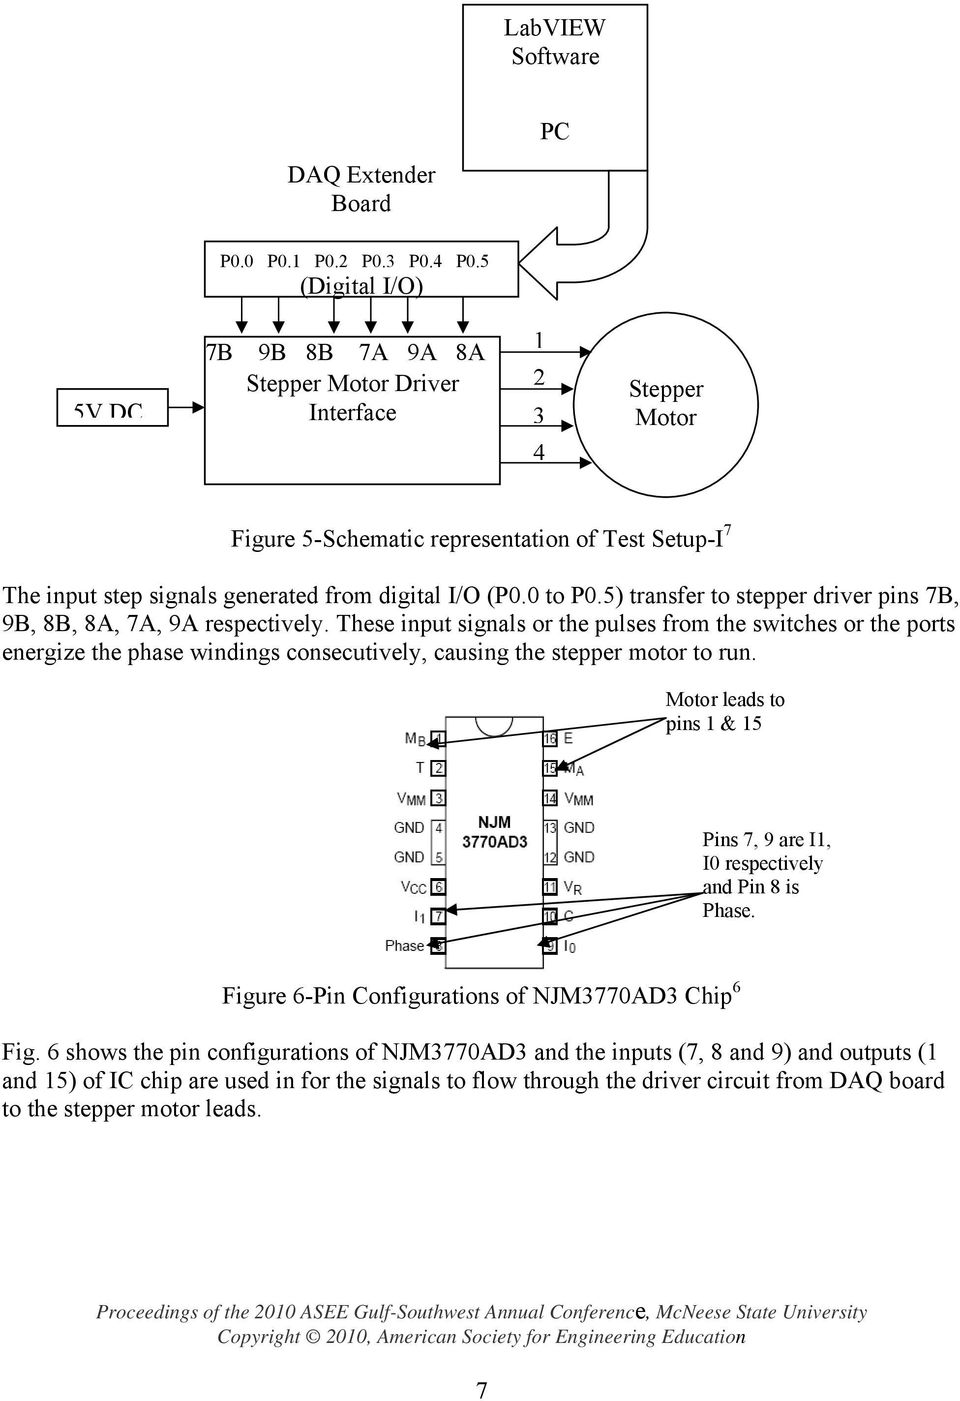 Stepper Motor Control Using Labview Tm In A Computer Numerically Steppermotorpulsegenerator Controlcircuit Circuit Diagram 0 To P05 Transfer Driver Pins 7b 9b 8b